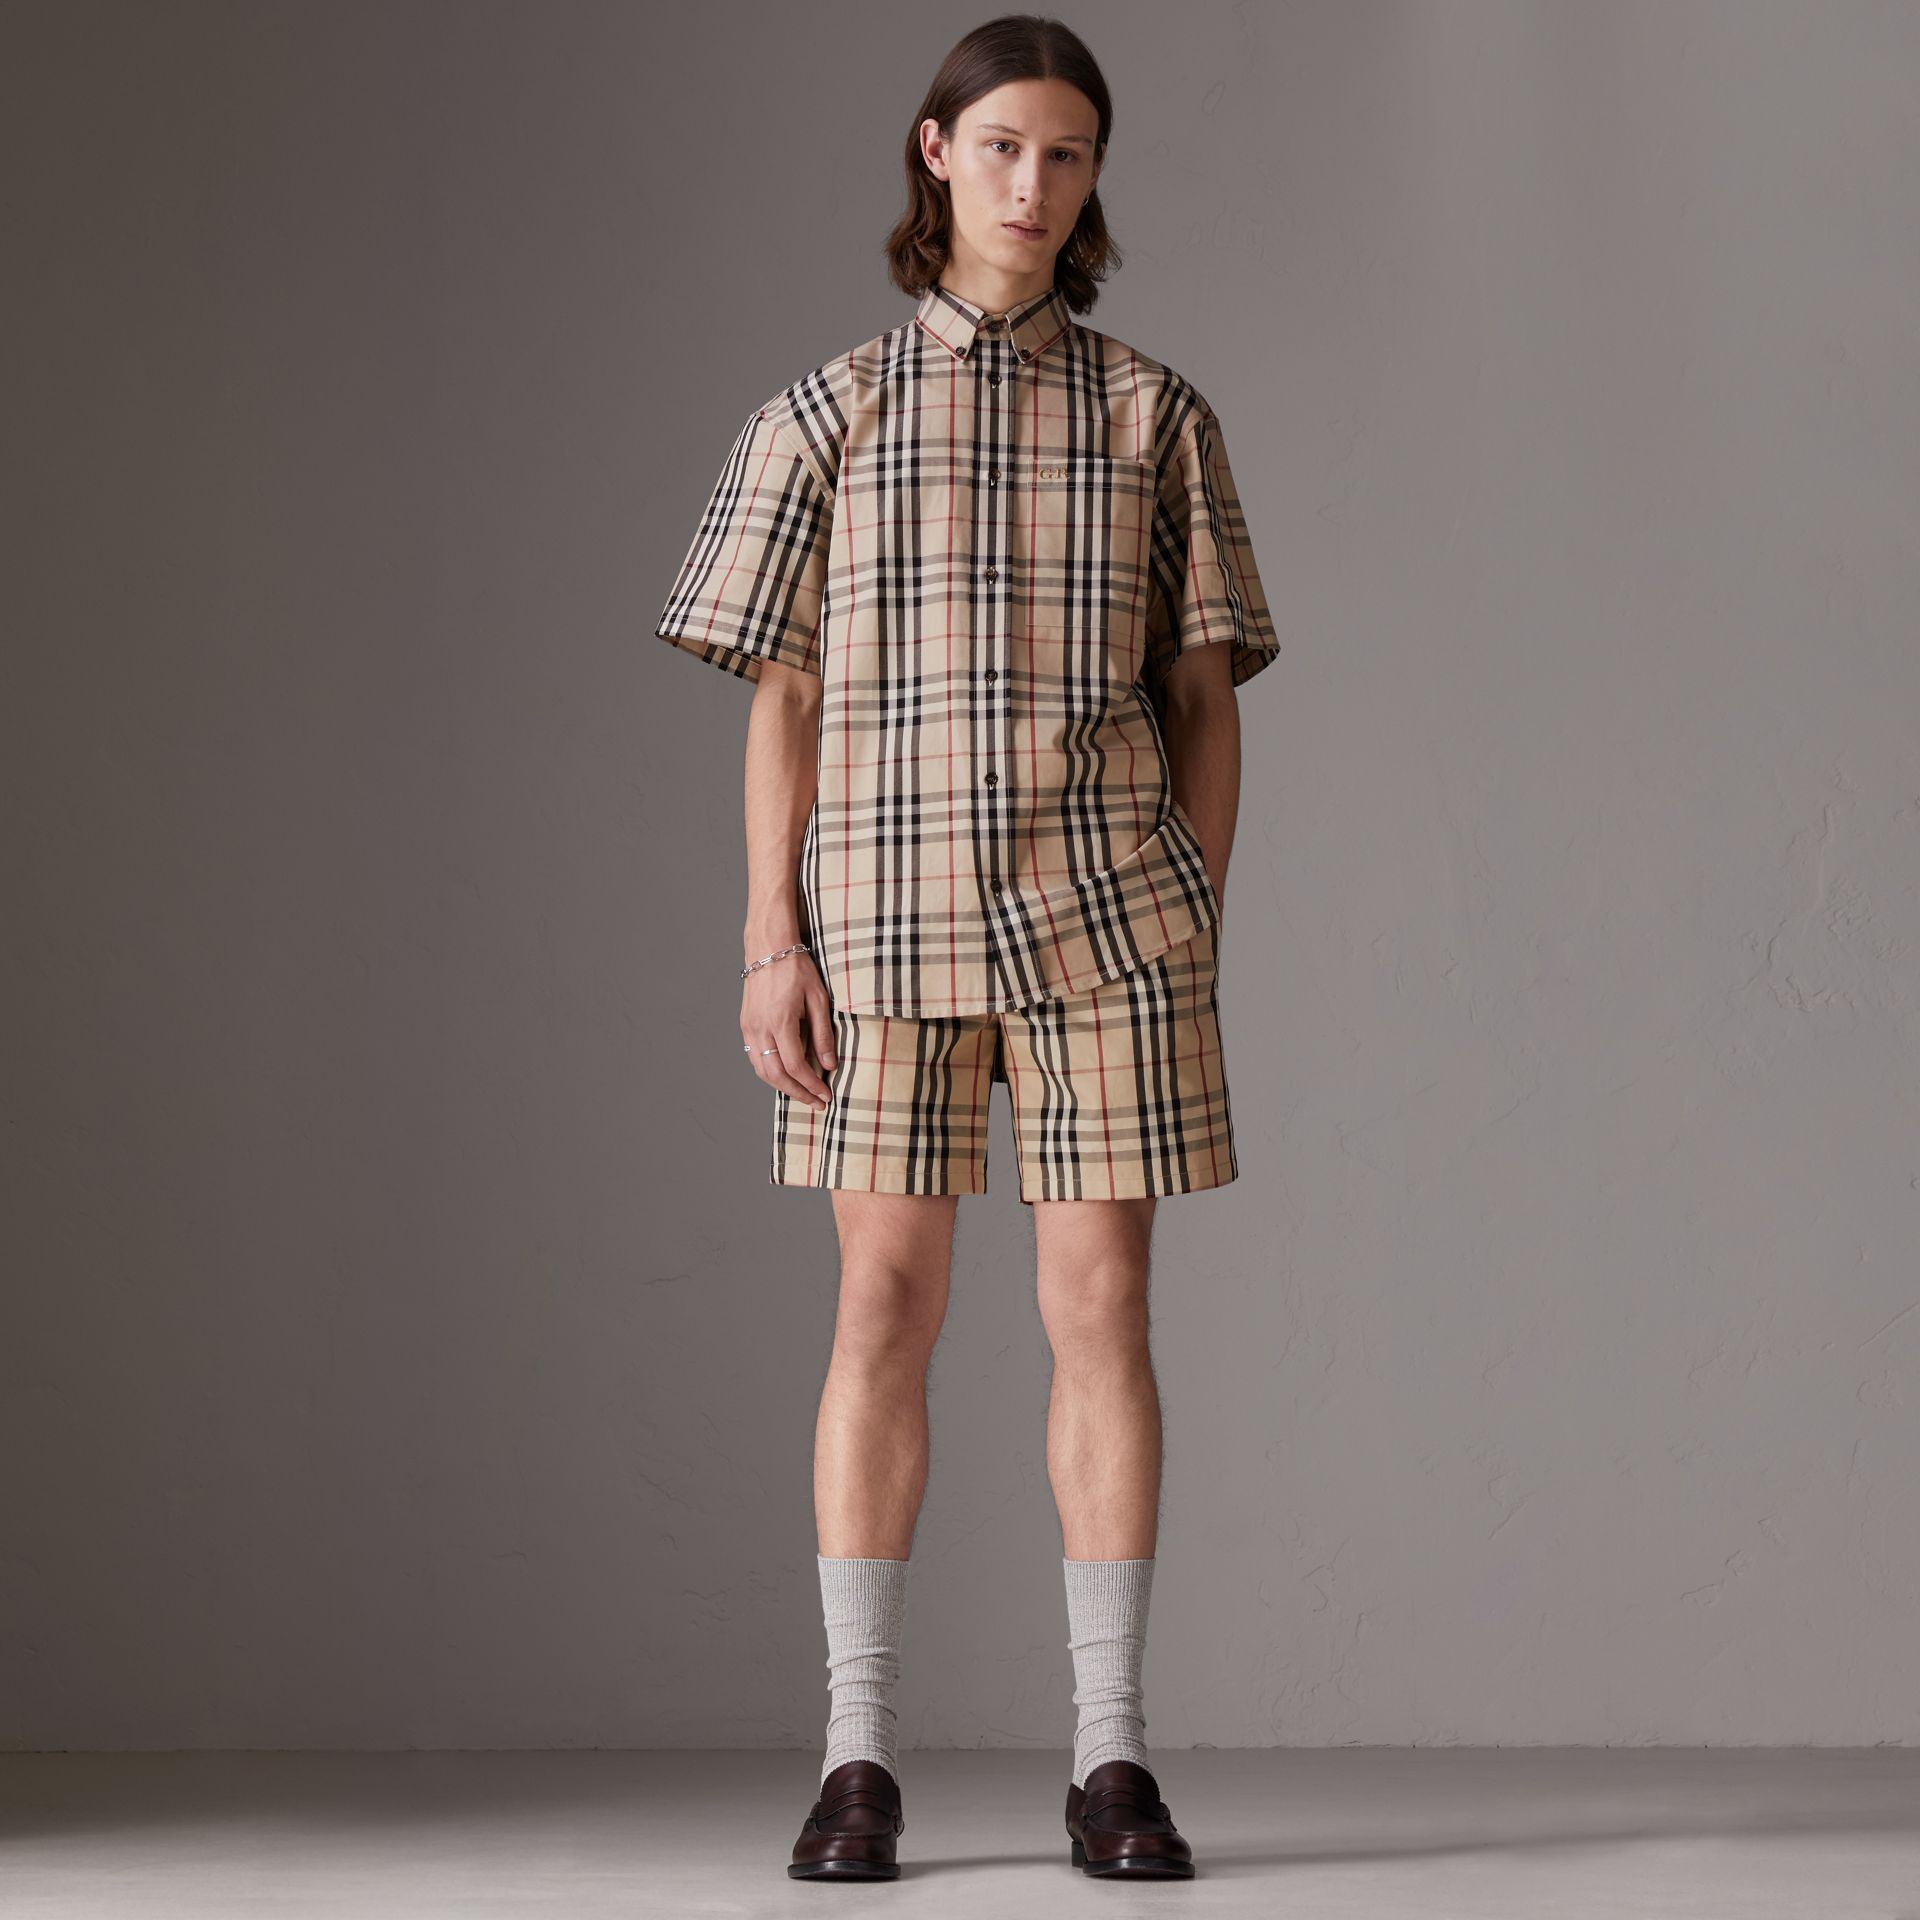 Gosha x Burberry Short-sleeve Check Shirt in Honey - Men | Burberry - gallery image 2